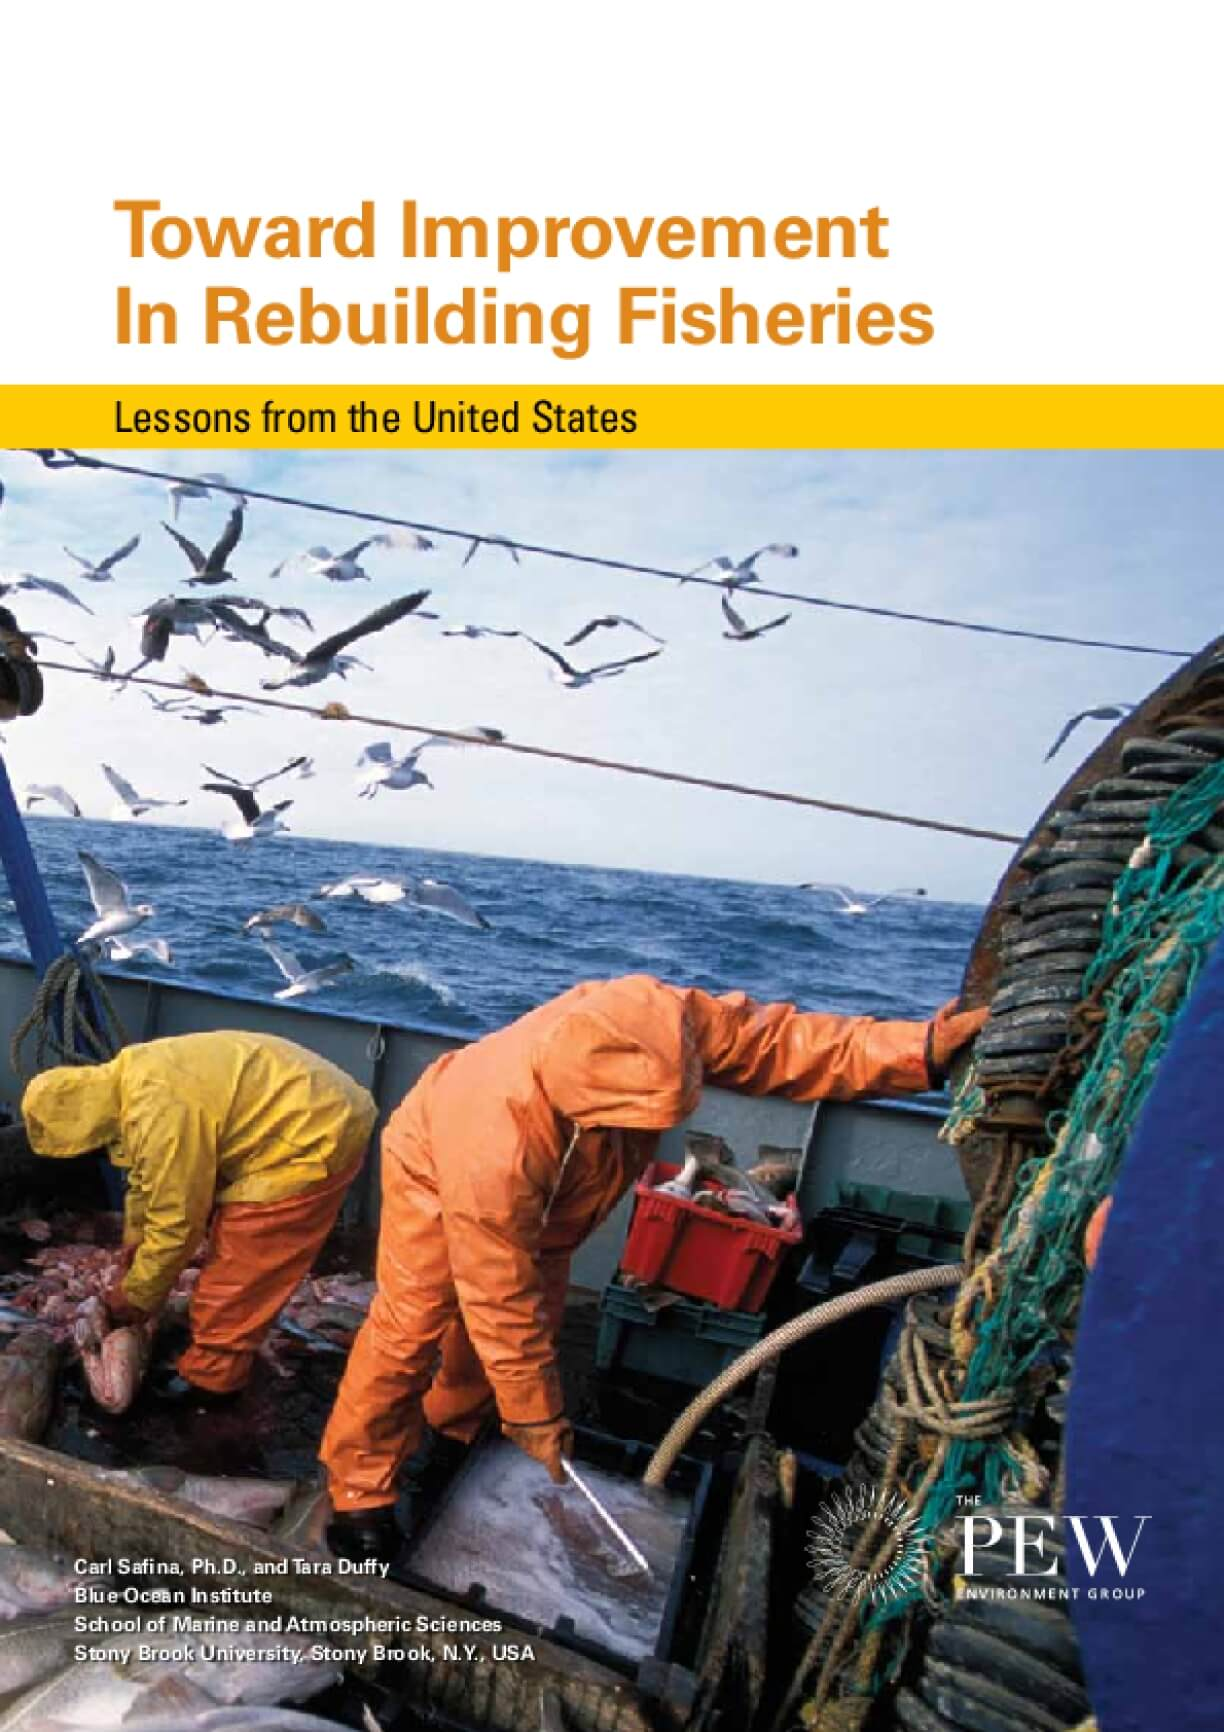 Toward Improvement In Rebuilding Fisheries: Lessons from the United States